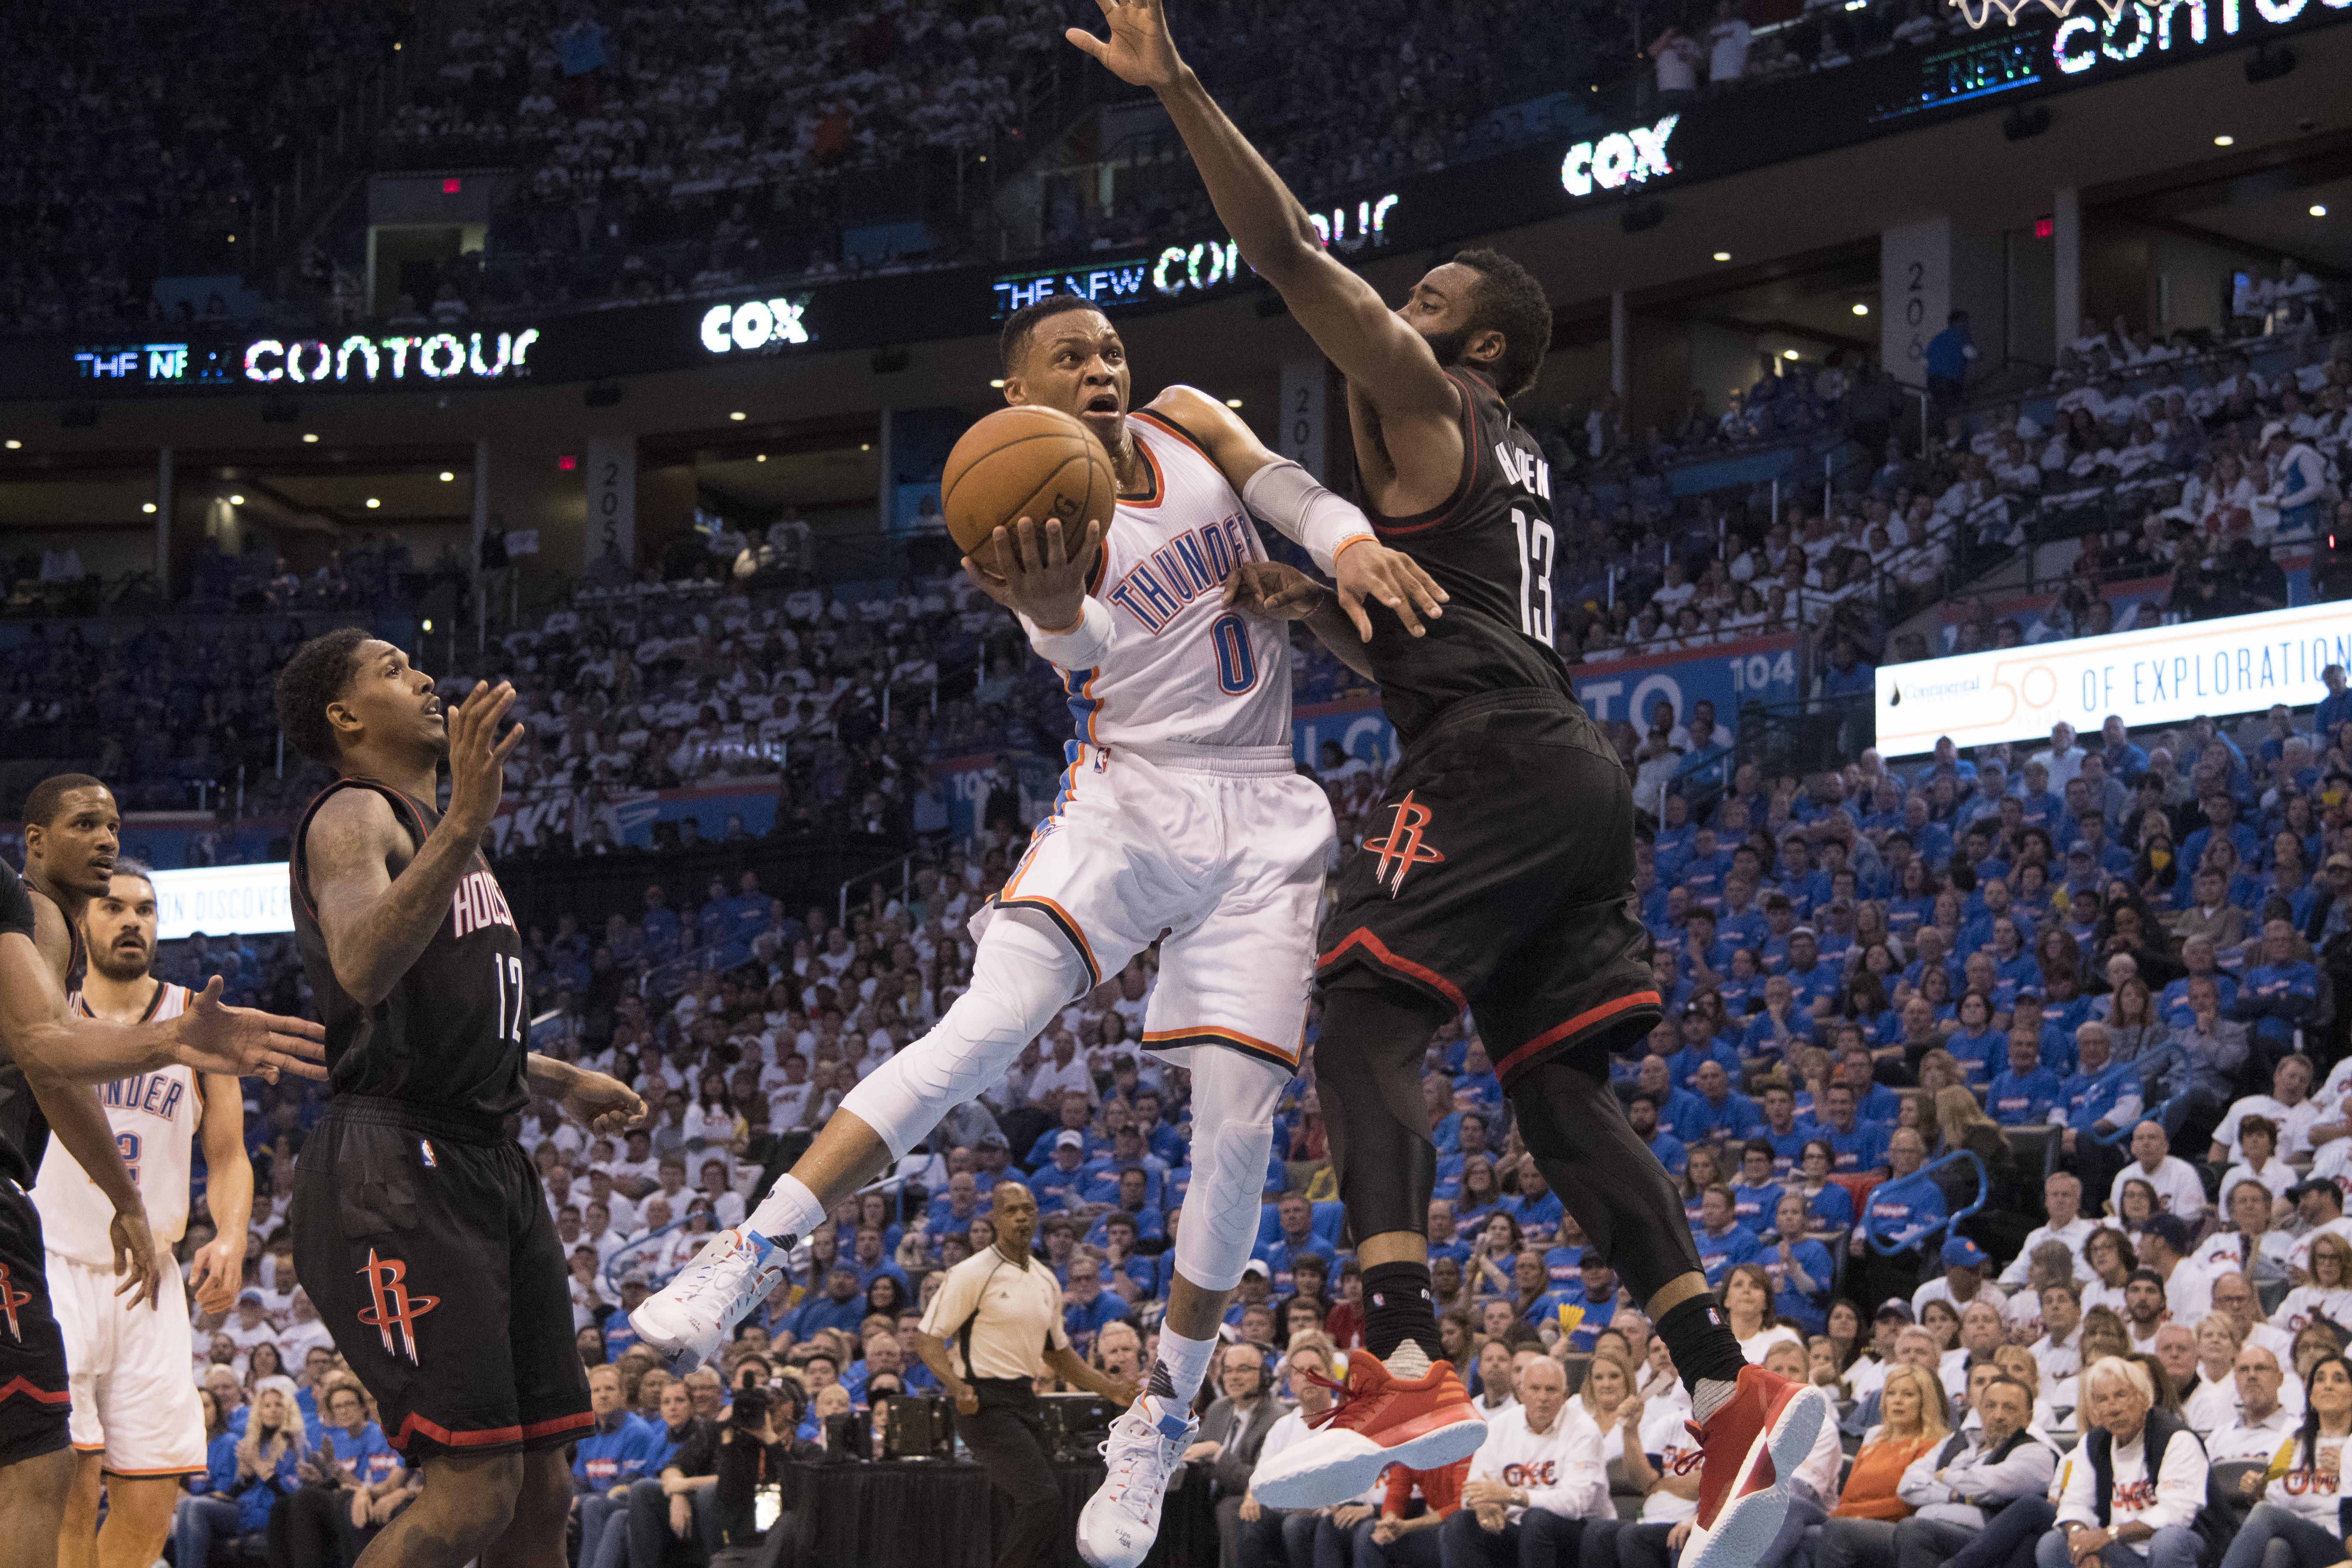 Russell Westbrook of the Oklahoma City Thunder drives around James Harden of the Houston Rockets for two points  during the second half of Game Three in the 2017 NBA Playoffs Western Conference Quarterfinals  on April 21, 2017 in Oklahoma City. (Photo by J Pat Carter/Getty Images)